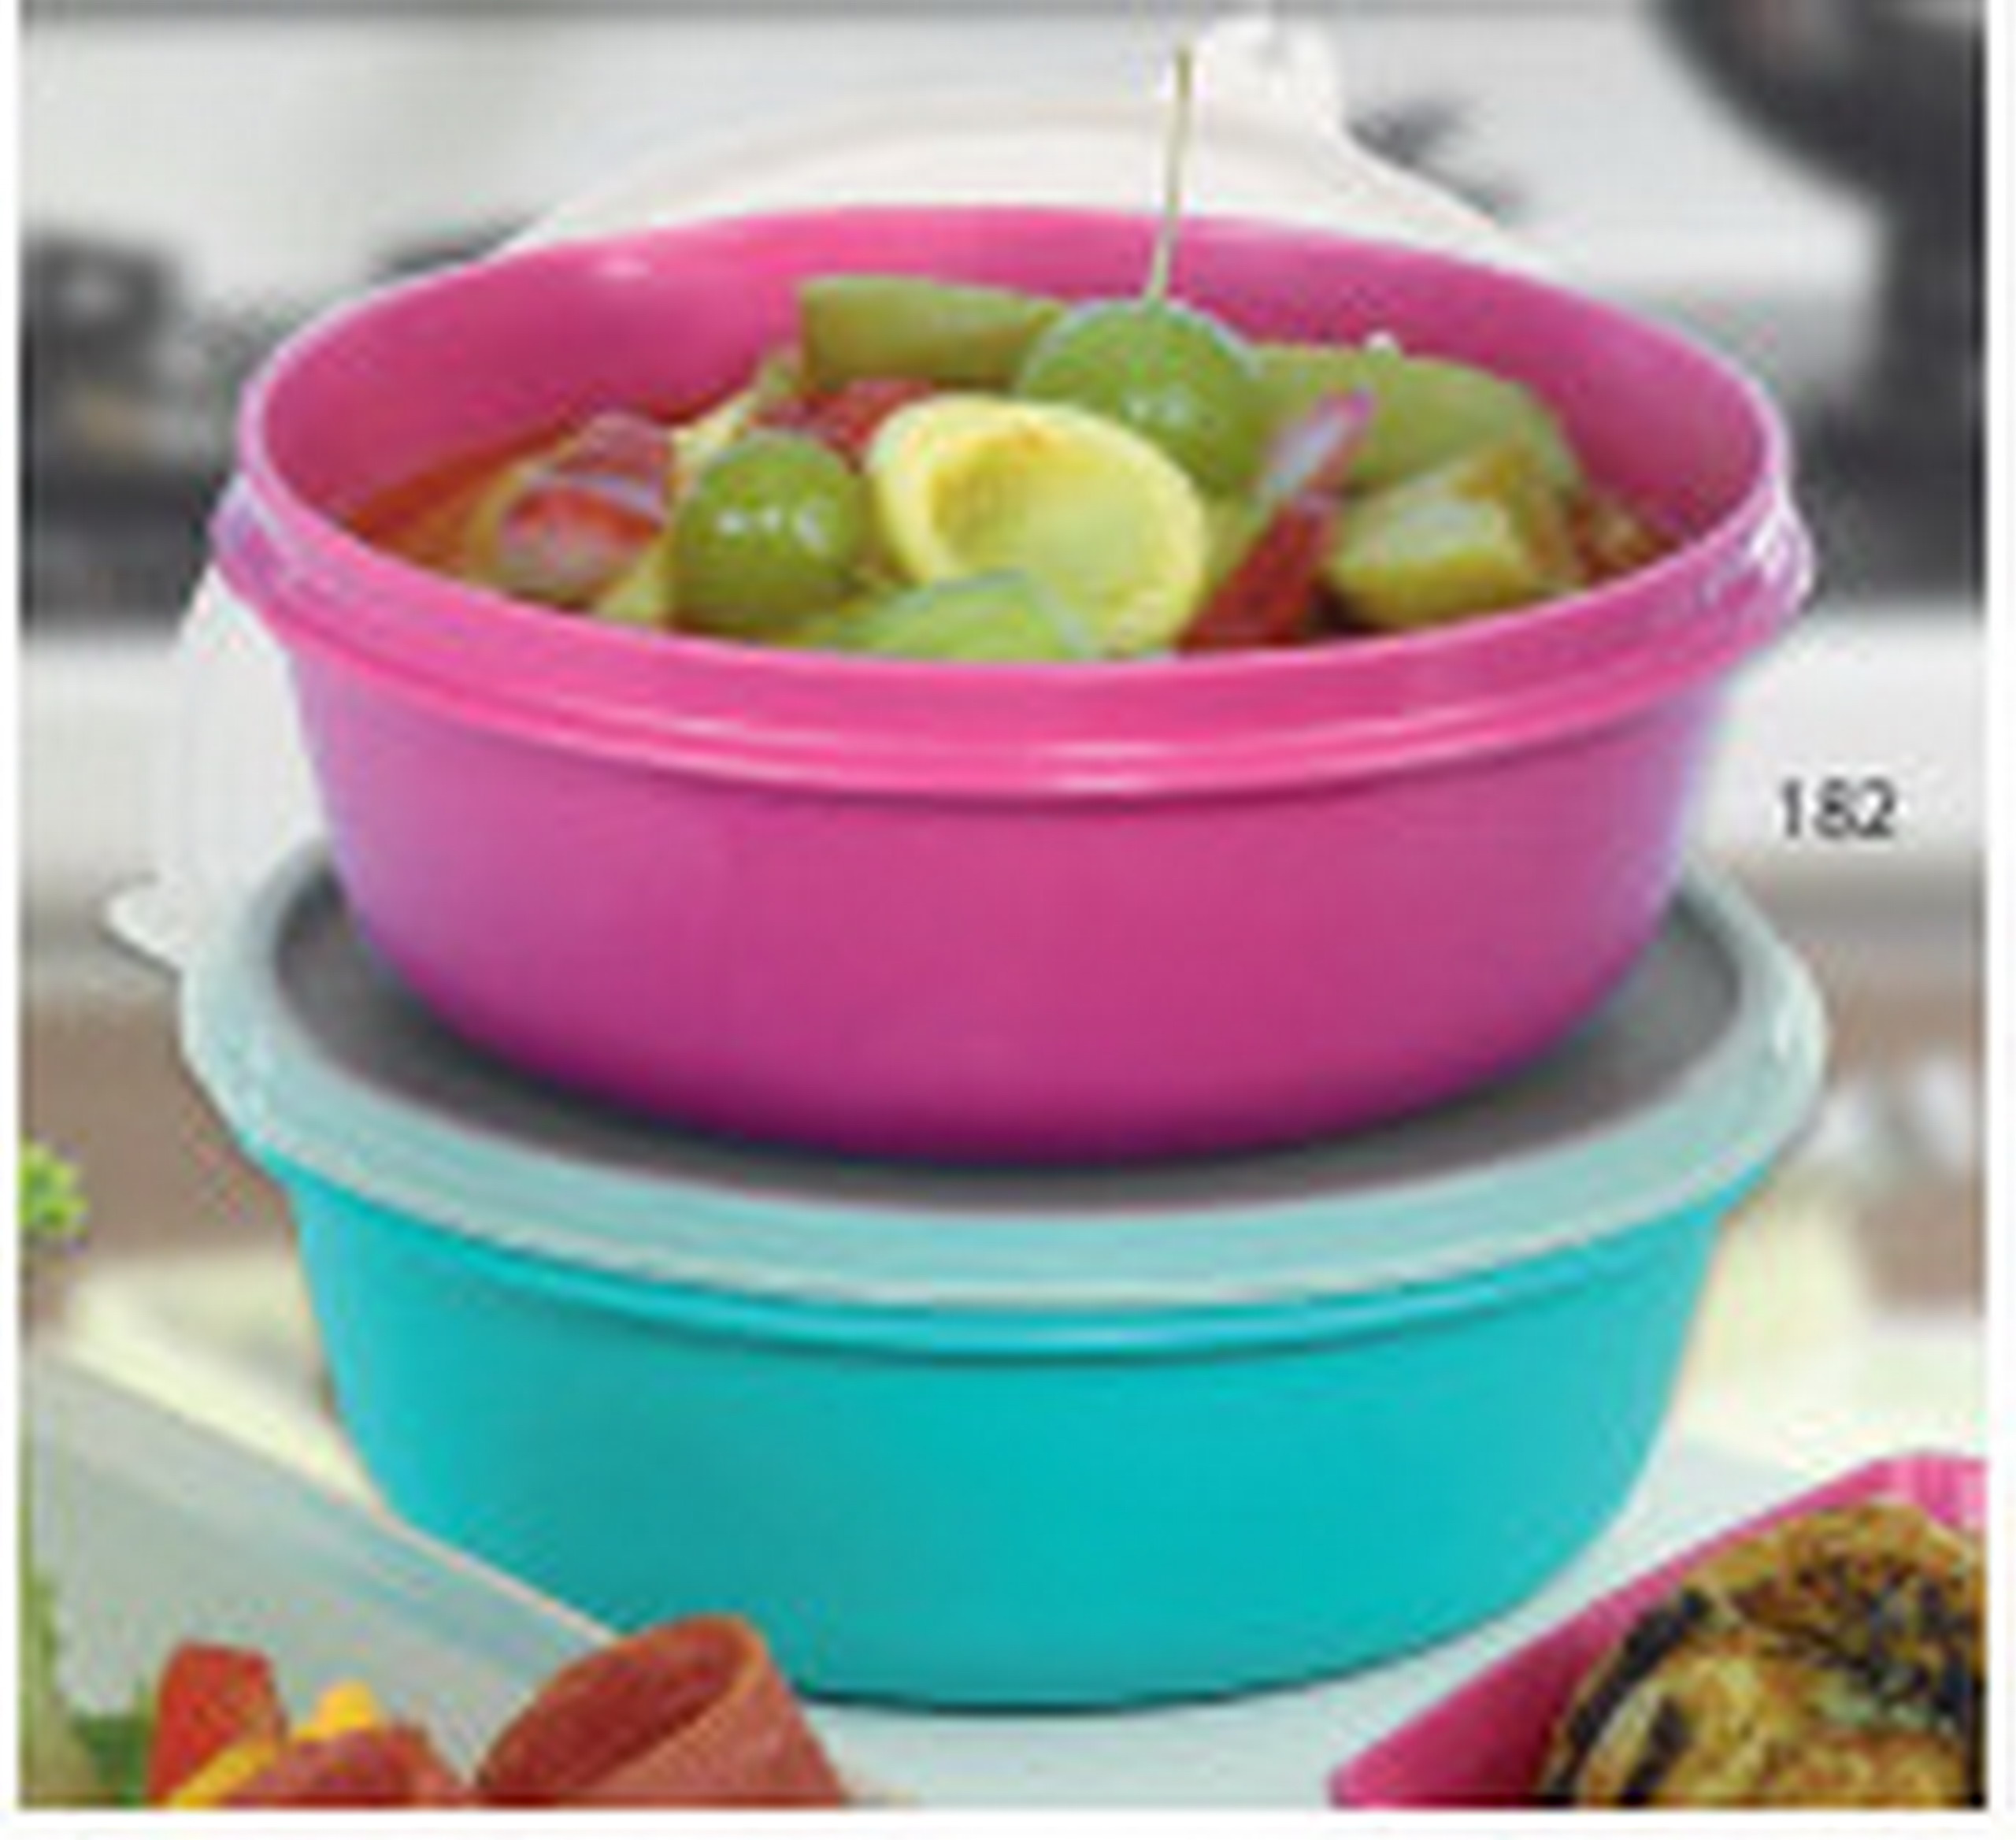 http://freetupperware.files.wordpress.com/2013/08/tupperware-indonesia-twin-modular-bowl-2.jpg